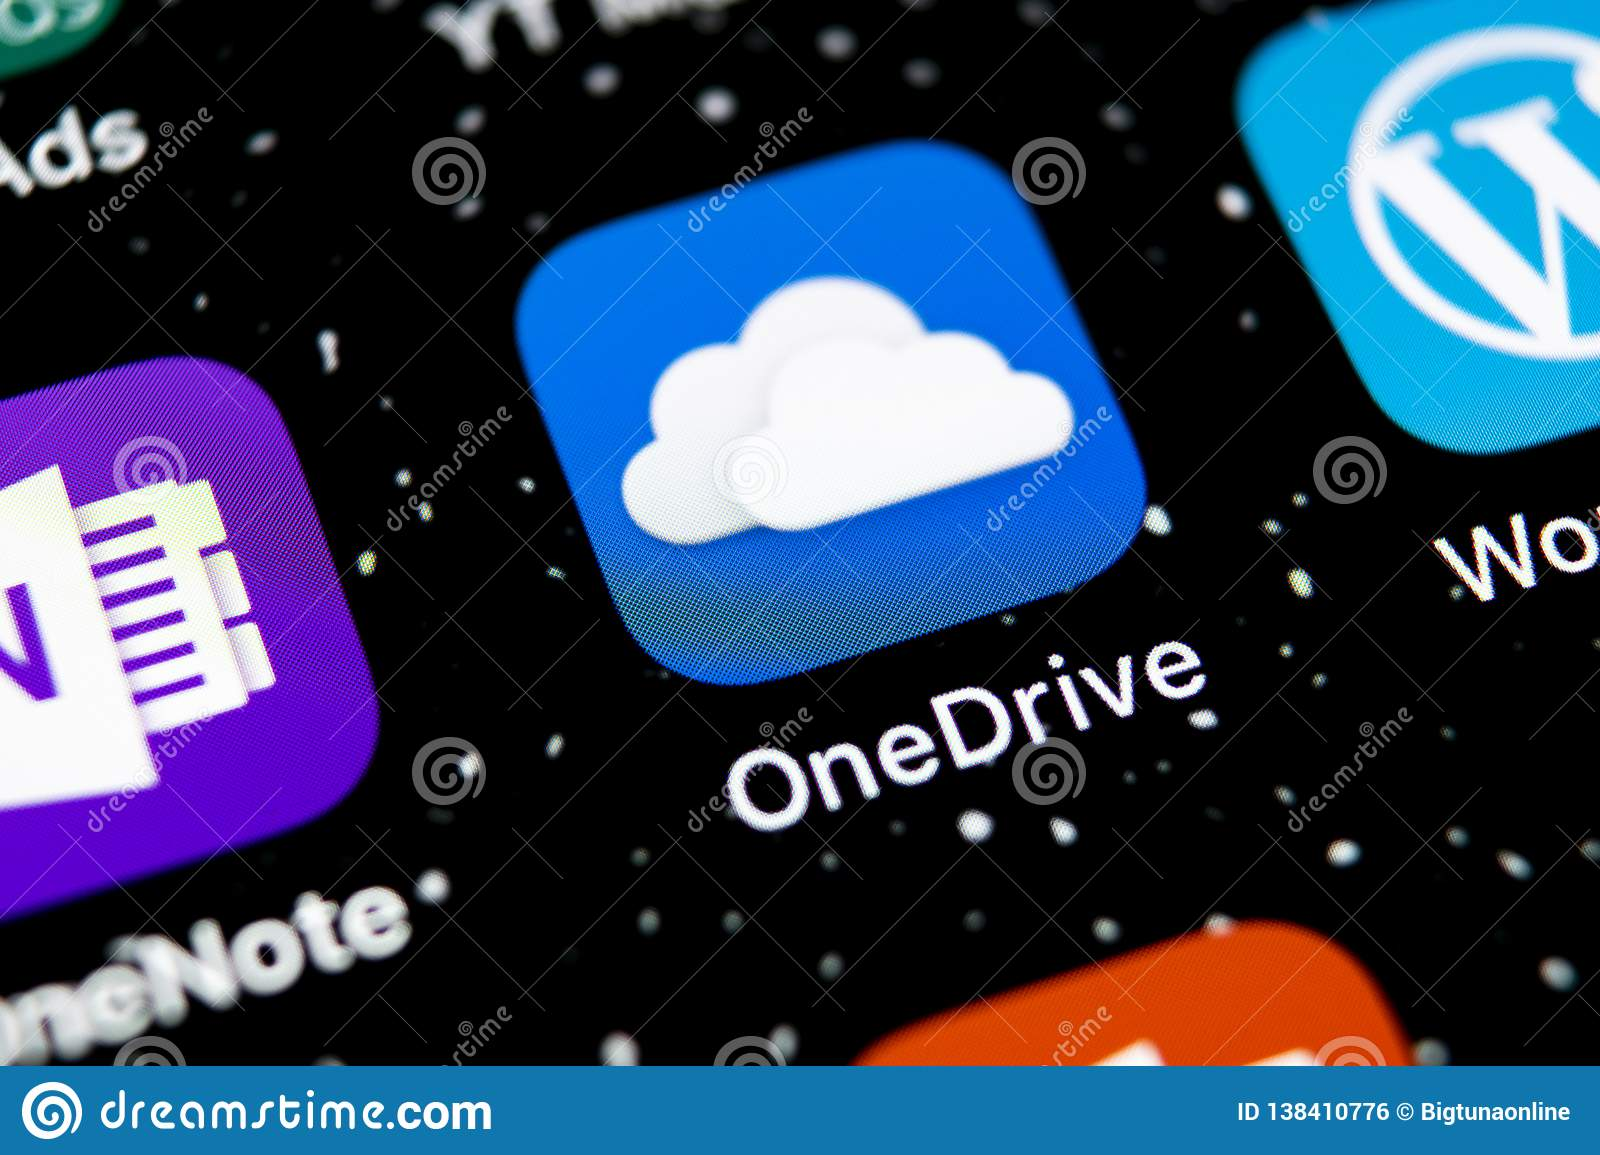 Microsoft OneDrive Application Icon On Apple IPhone X Screen Close